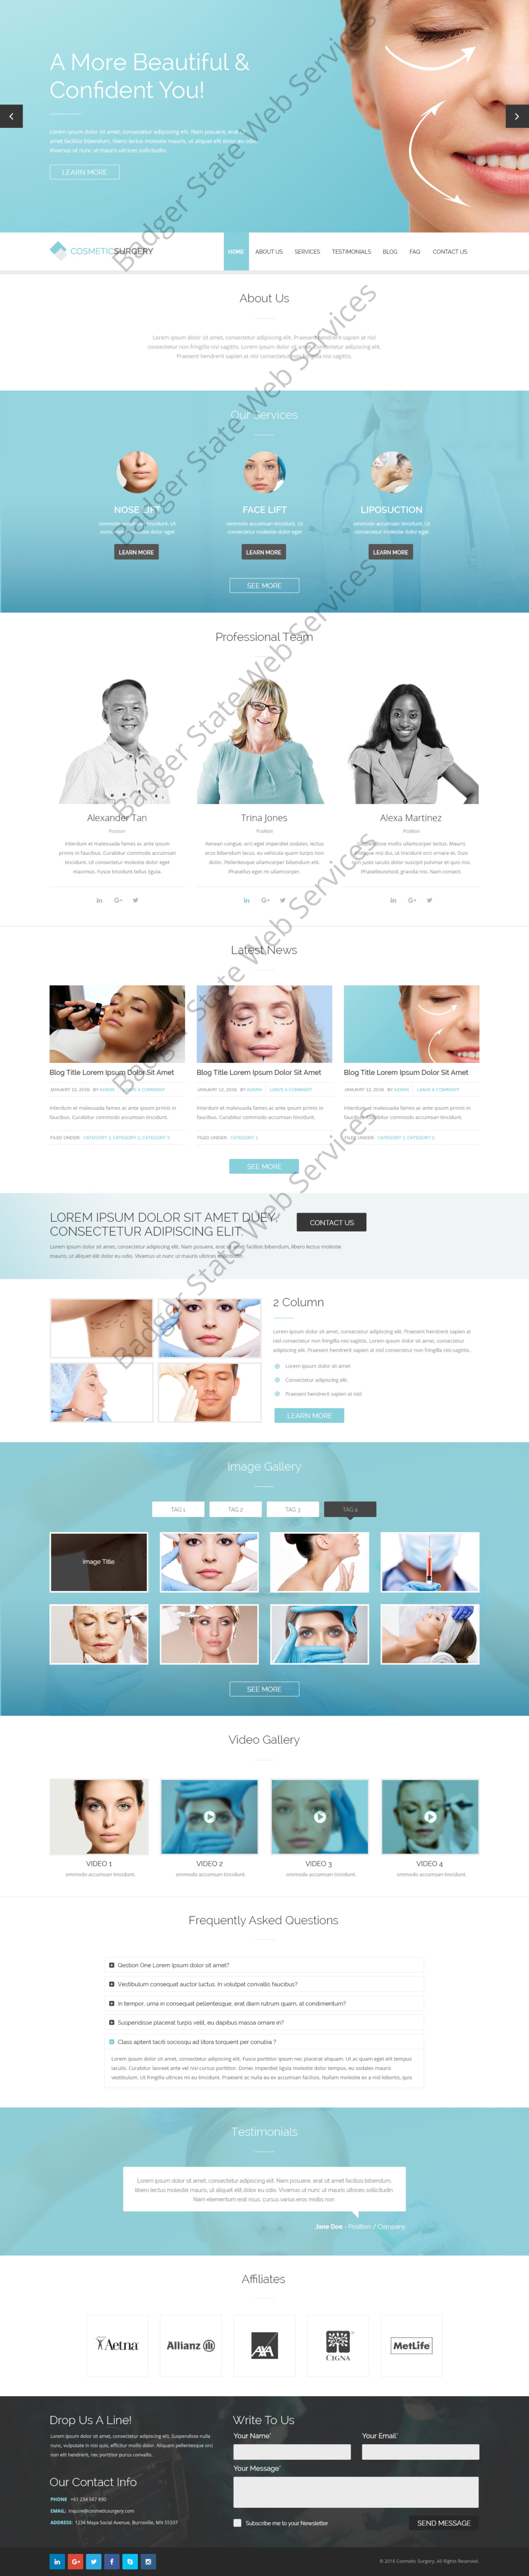 Cosmetic Web Design Mockup-F